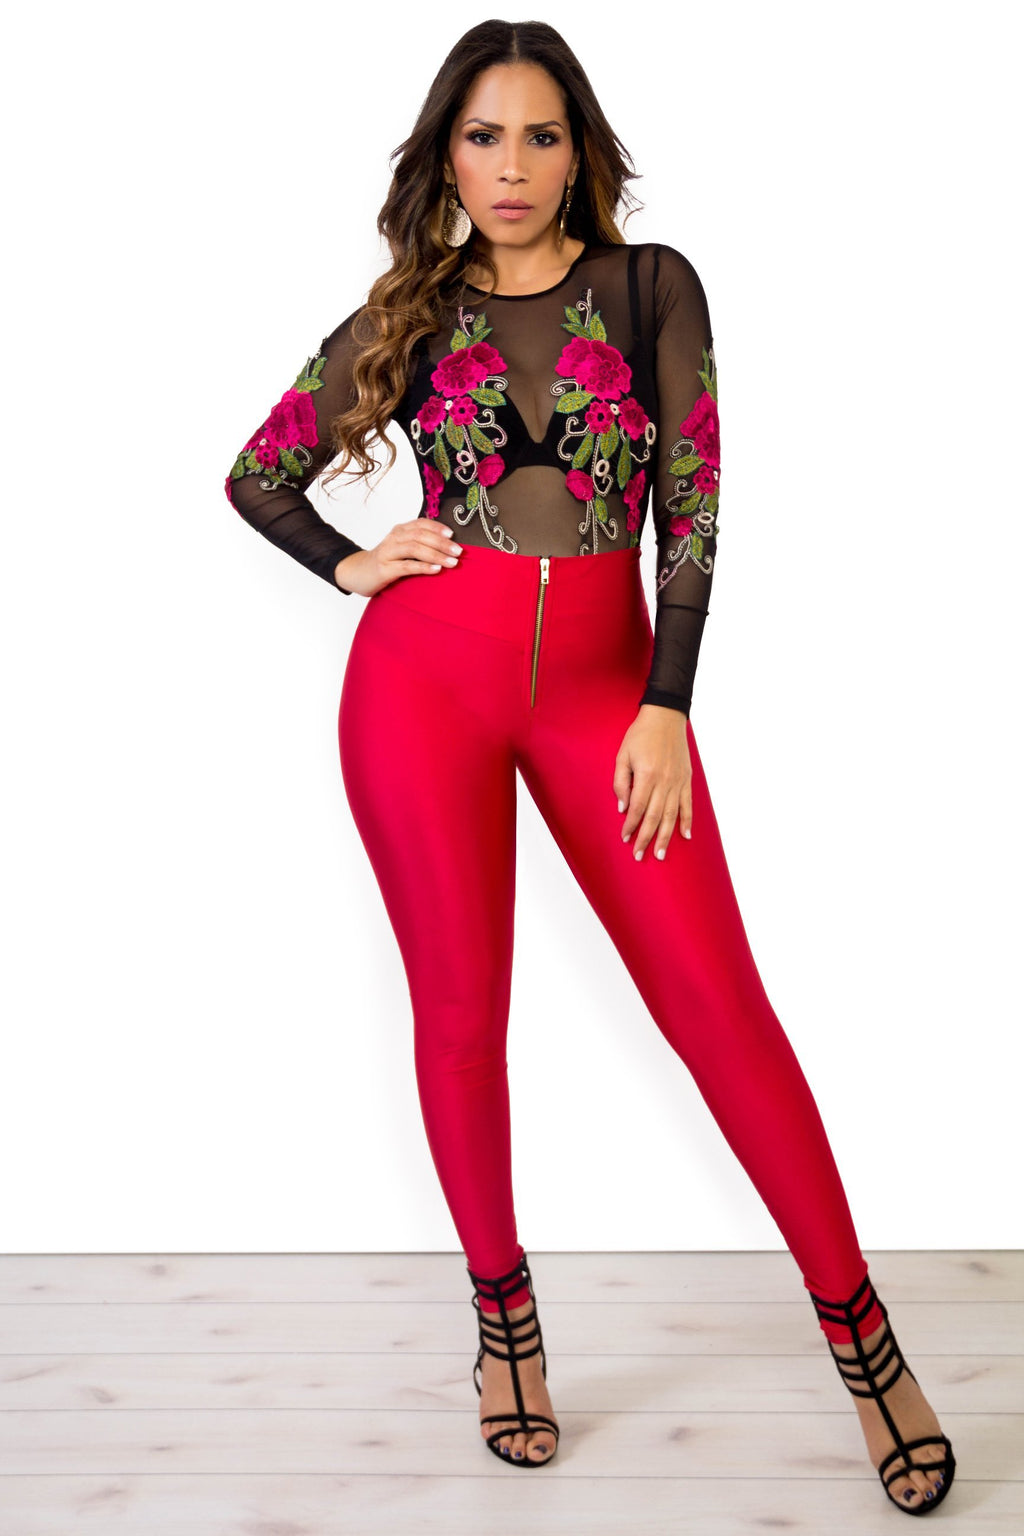 Alexa High Waist Front Zipper Leggings In Red - MY SEXY STYLES